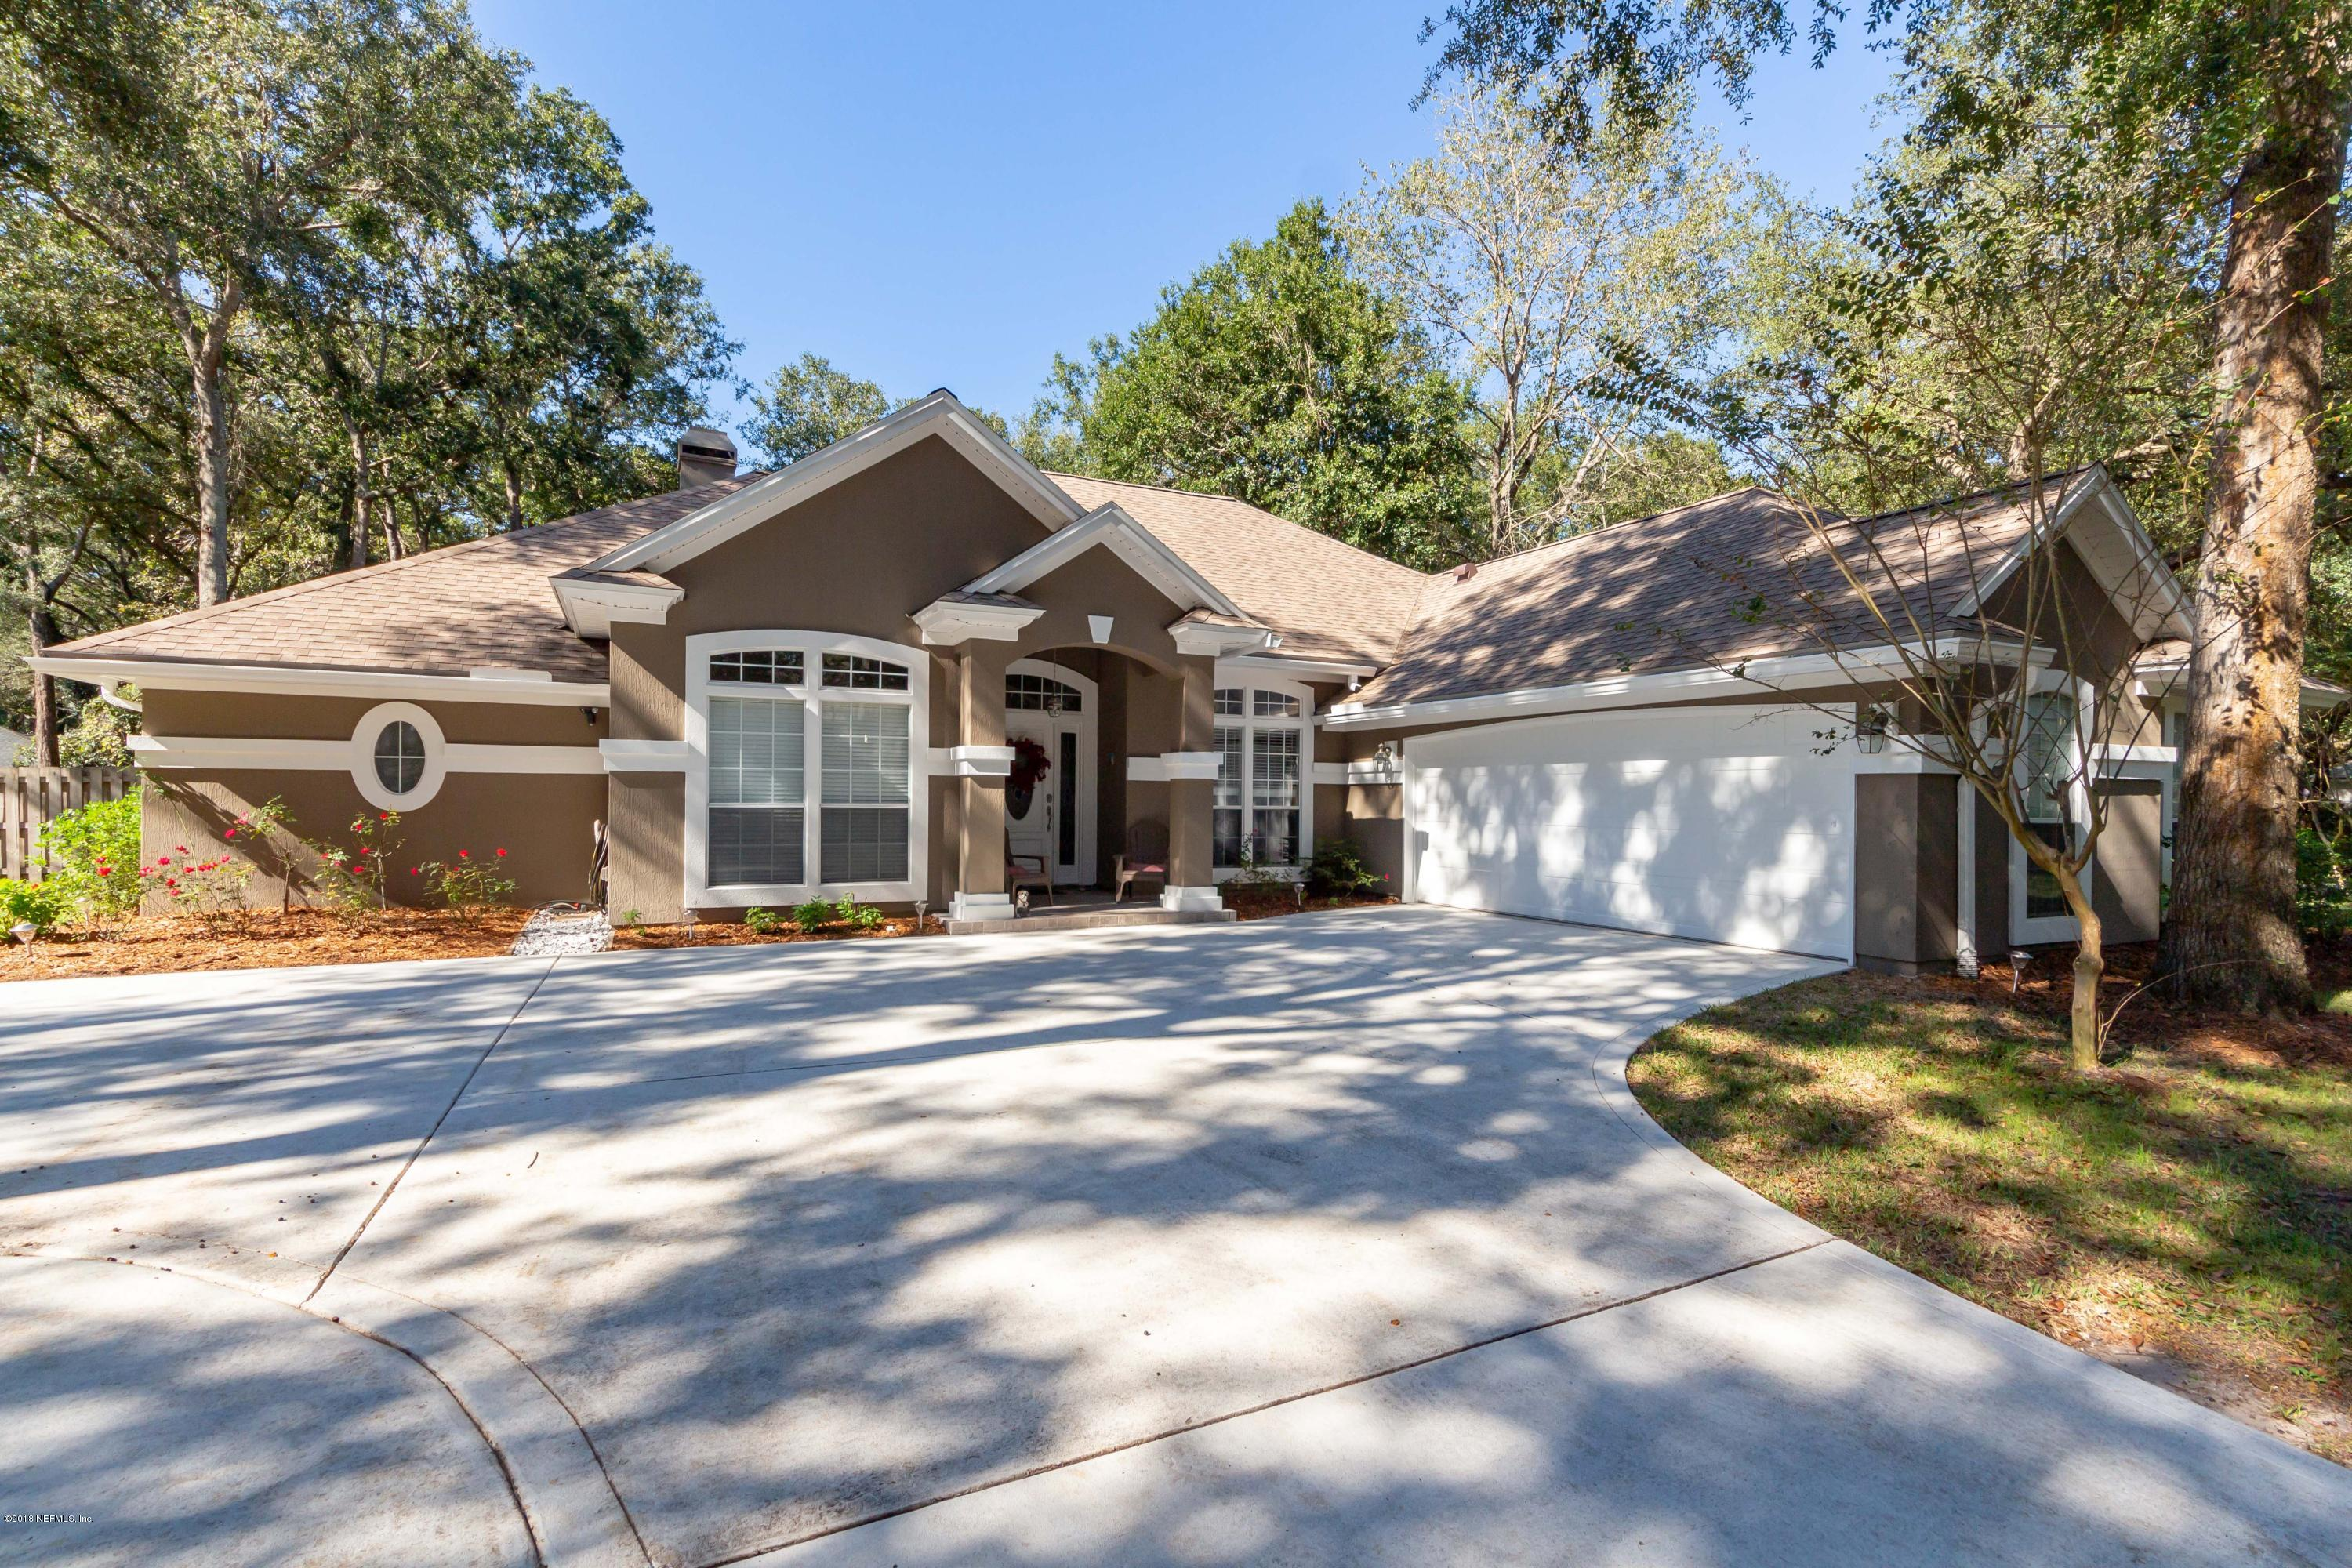 3682 CHERRY HILLS, GREEN COVE SPRINGS, FLORIDA 32043, 4 Bedrooms Bedrooms, ,2 BathroomsBathrooms,Residential - single family,For sale,CHERRY HILLS,967669